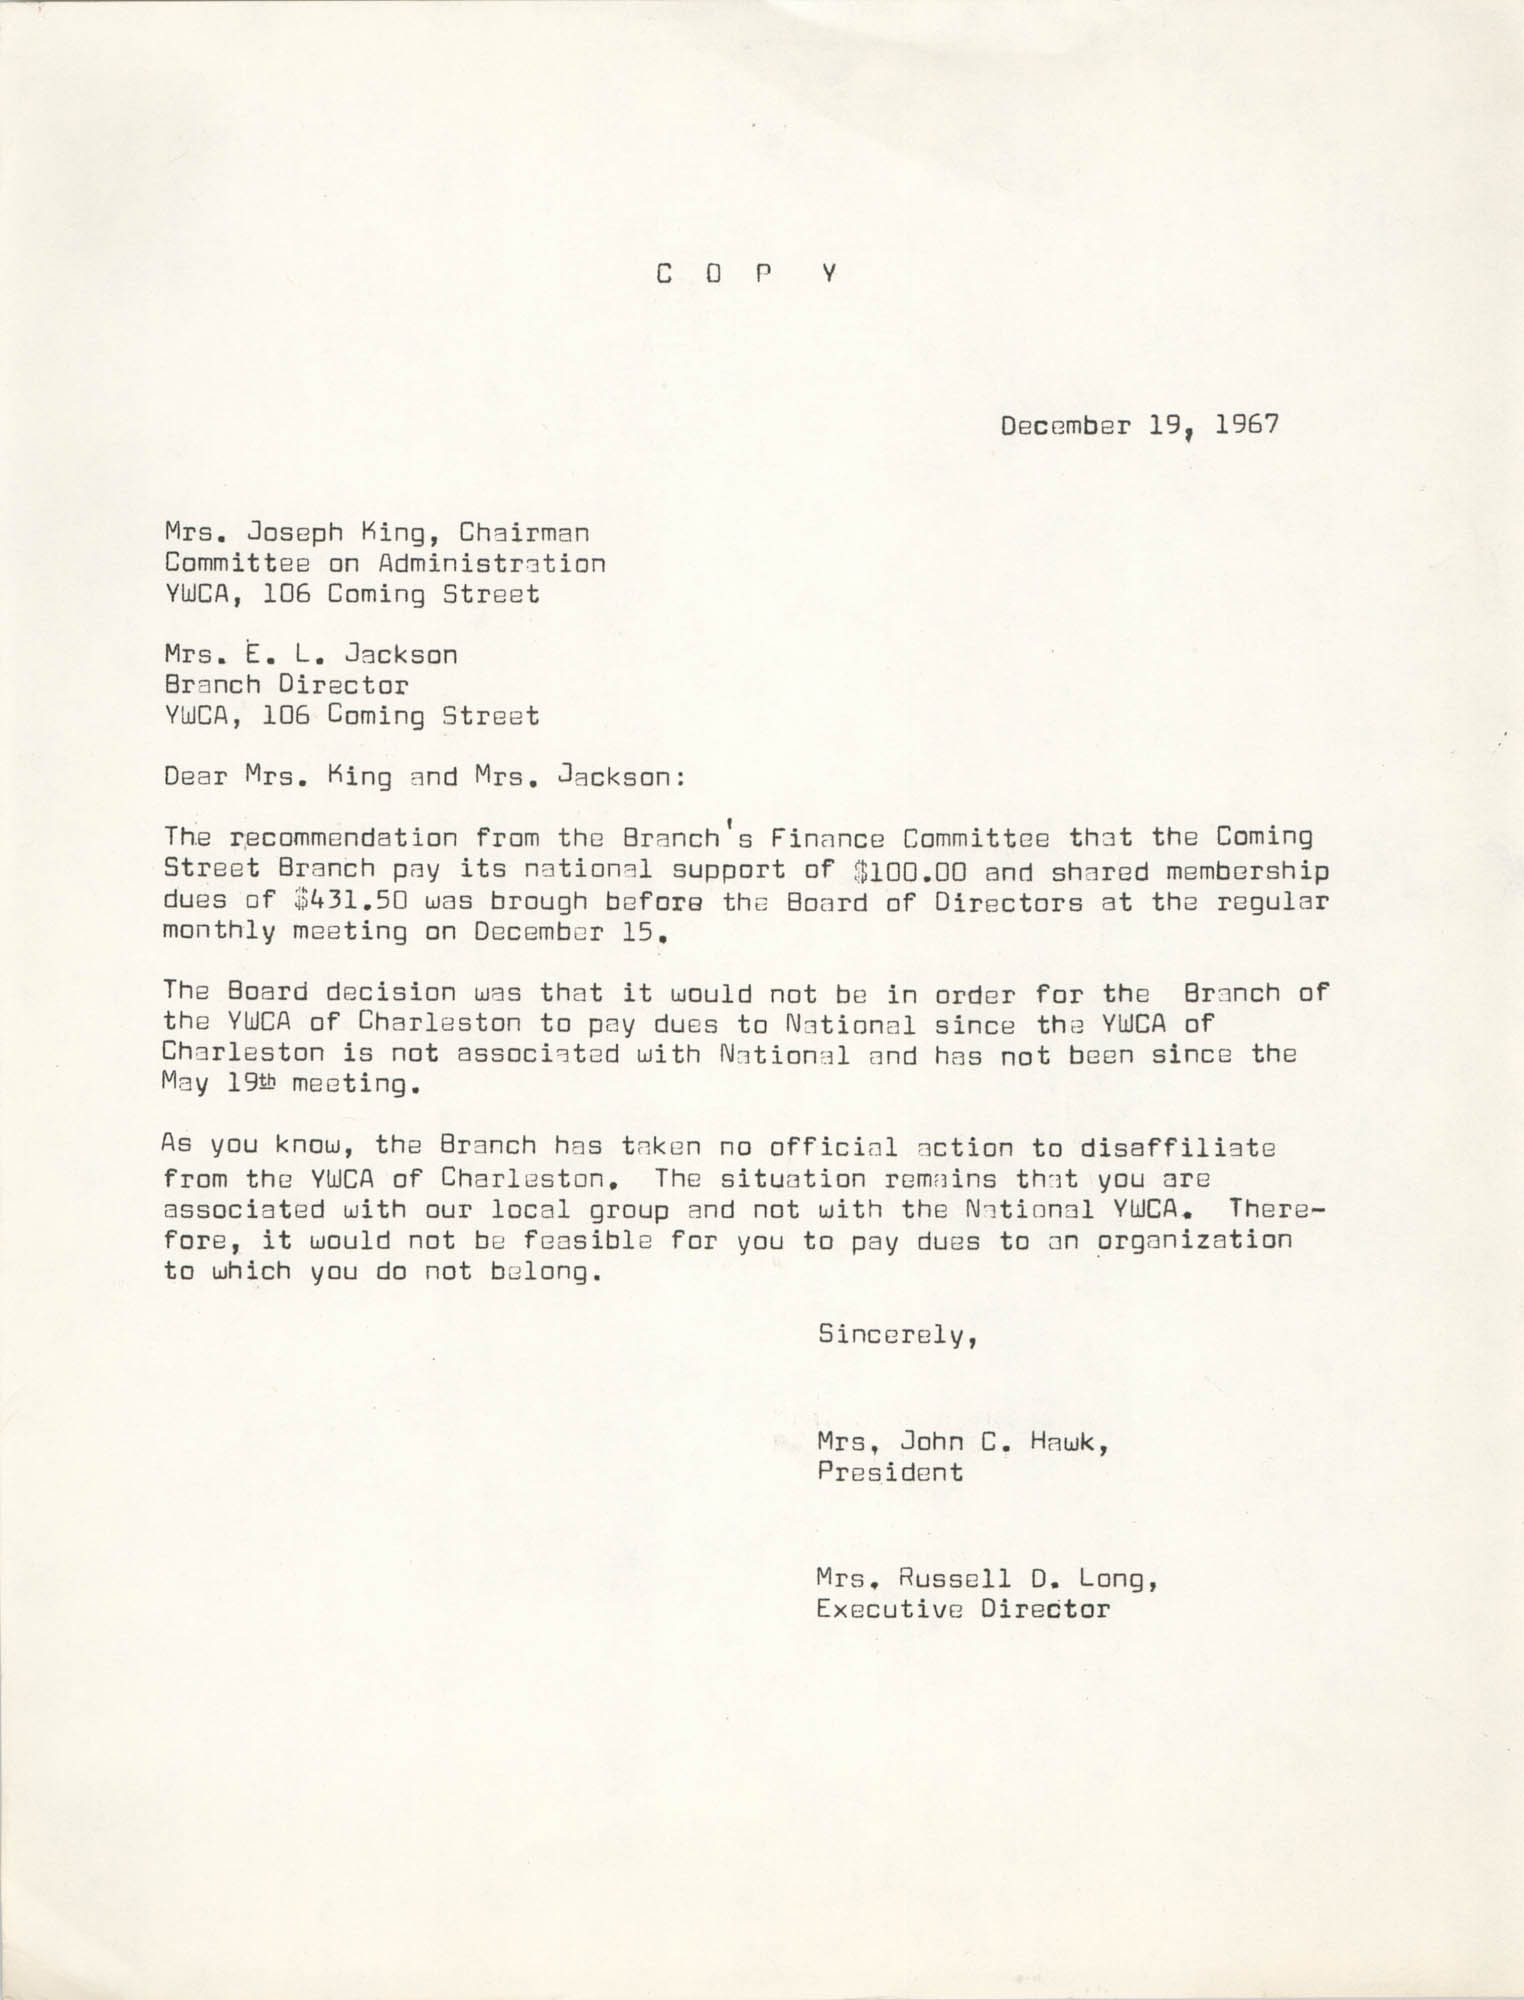 Letter from Mrs. John C. Hawk and Mrs. Russell D. Long to Mrs. Joseph King and Christine O. Jackson, December 19, 1967